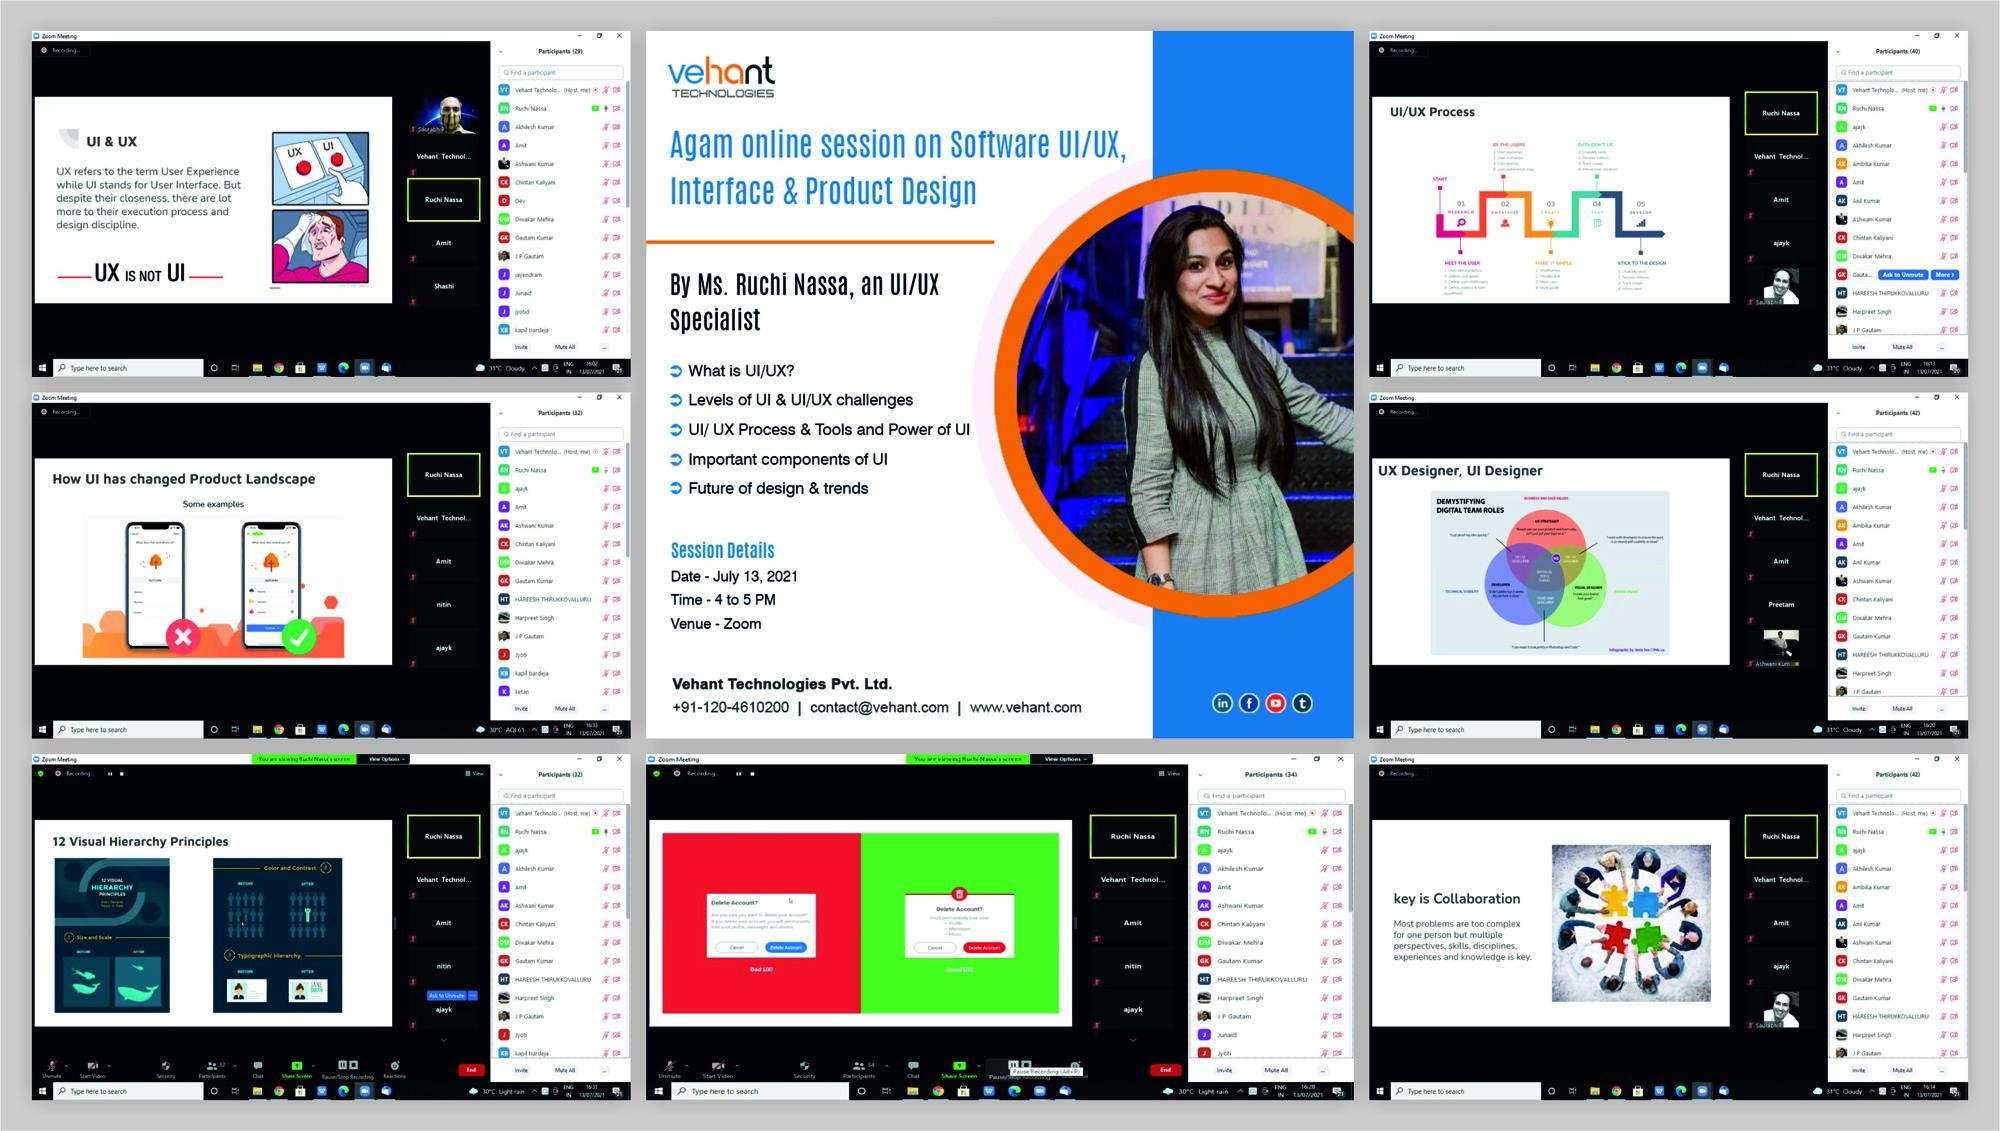 Vehant conducted an online session on Software UI/UX Interface & Product Design by Ms. Ruchi Nassa, a UI/UX Specialist for its members